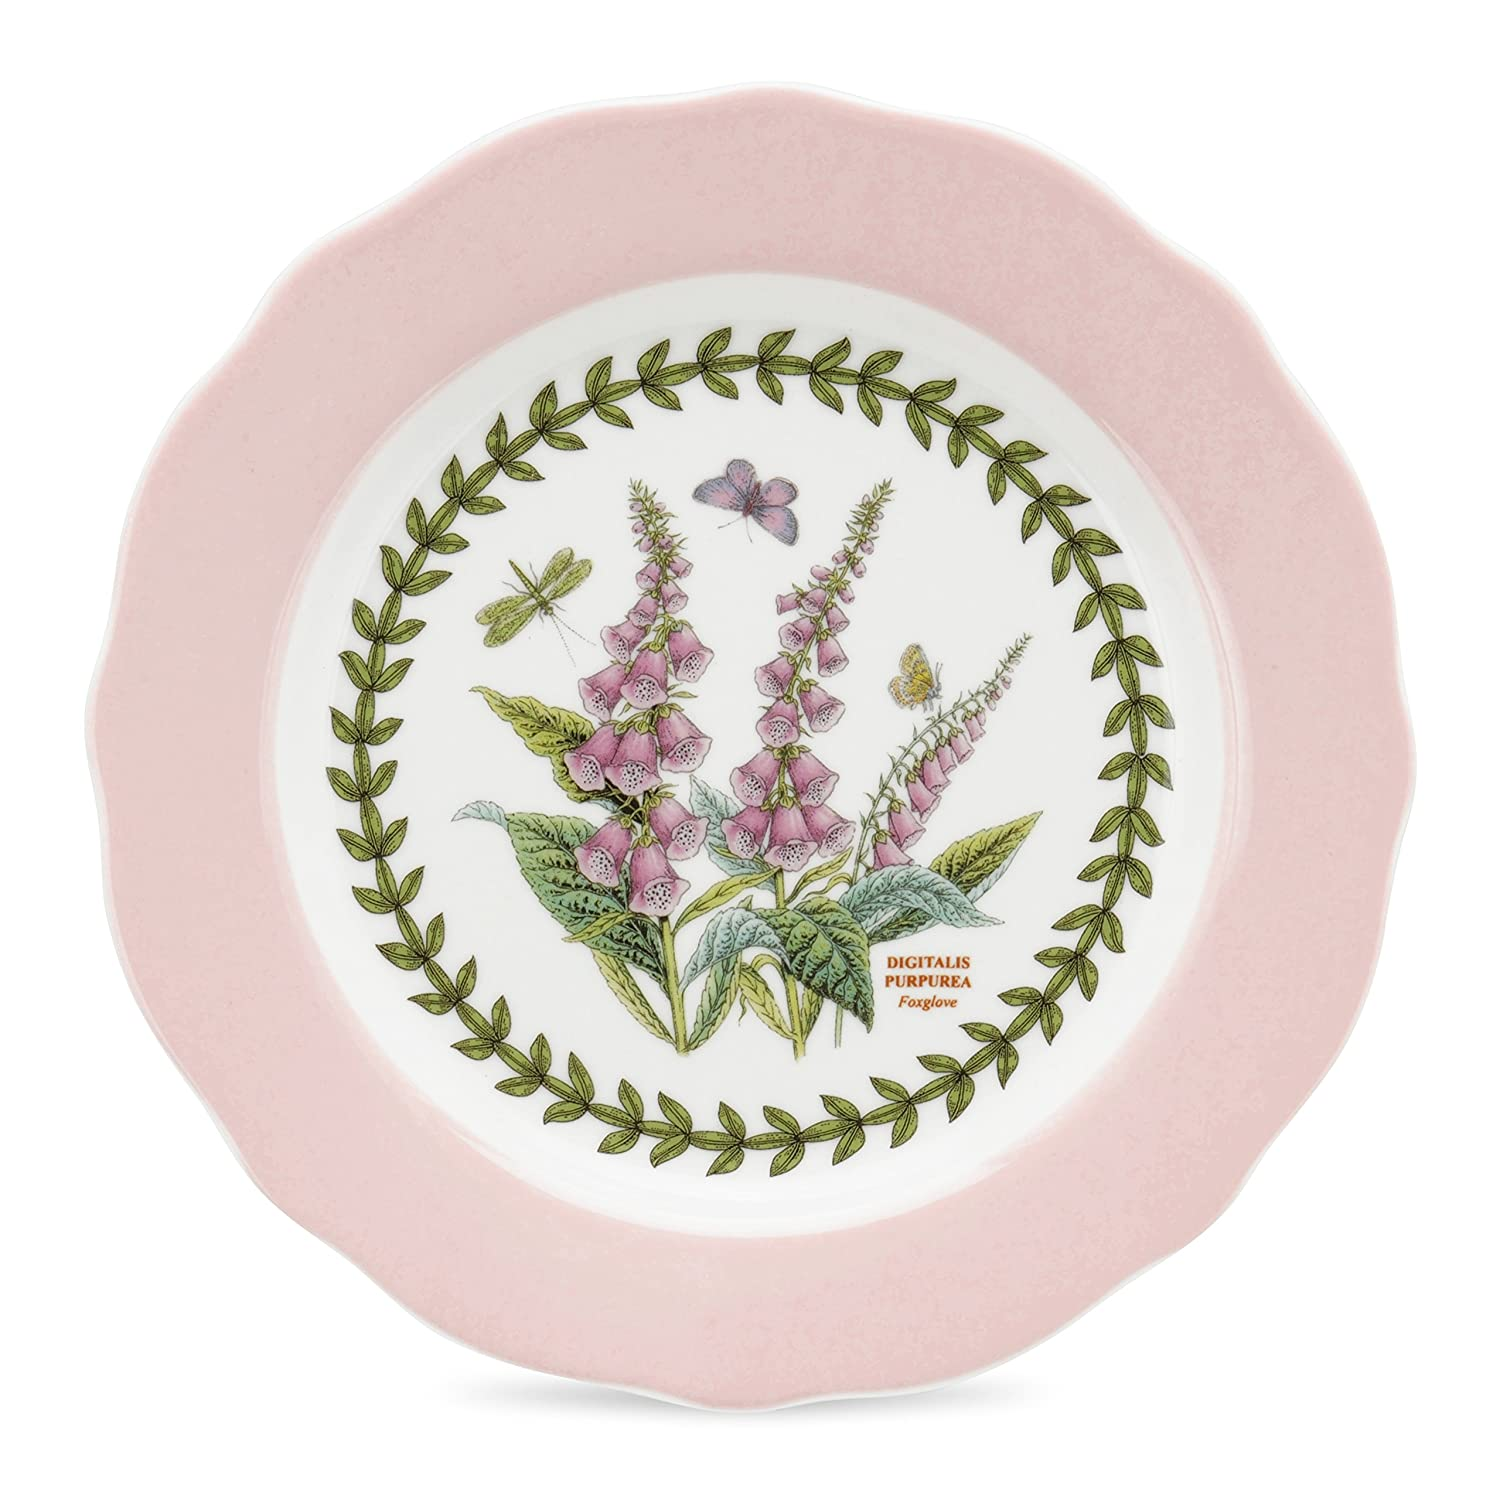 PORTMEIRION BOTANIC GARDEN TERRACE Scalloped edge dessert plates asst set of 4 COMINHKPR48530